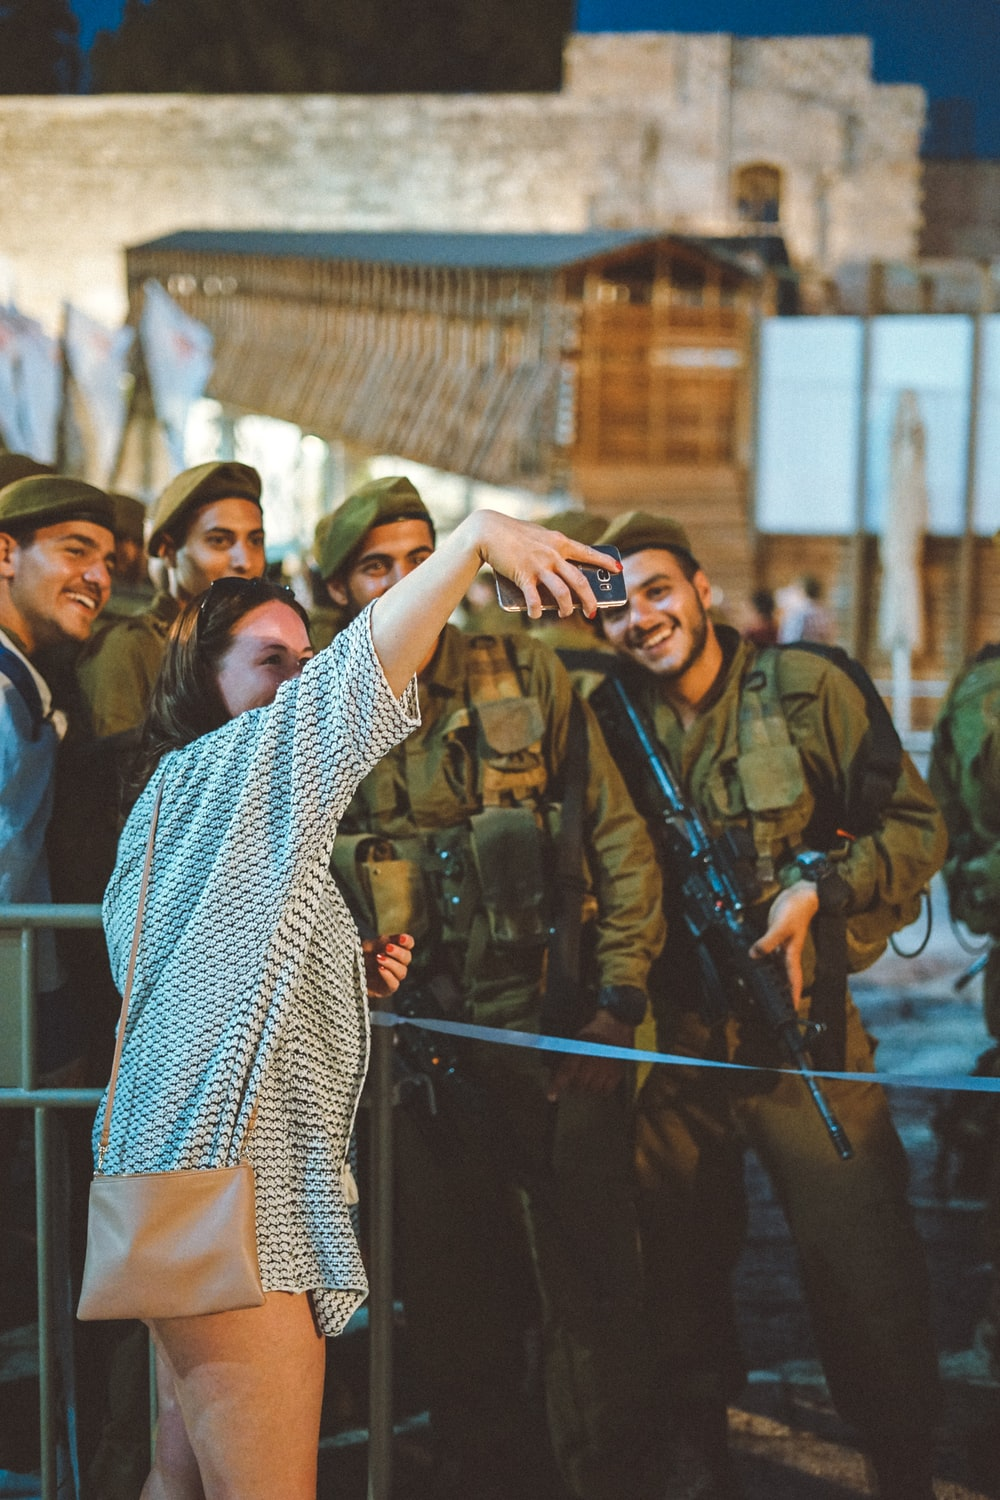 woman taking groupie picture with four militarys